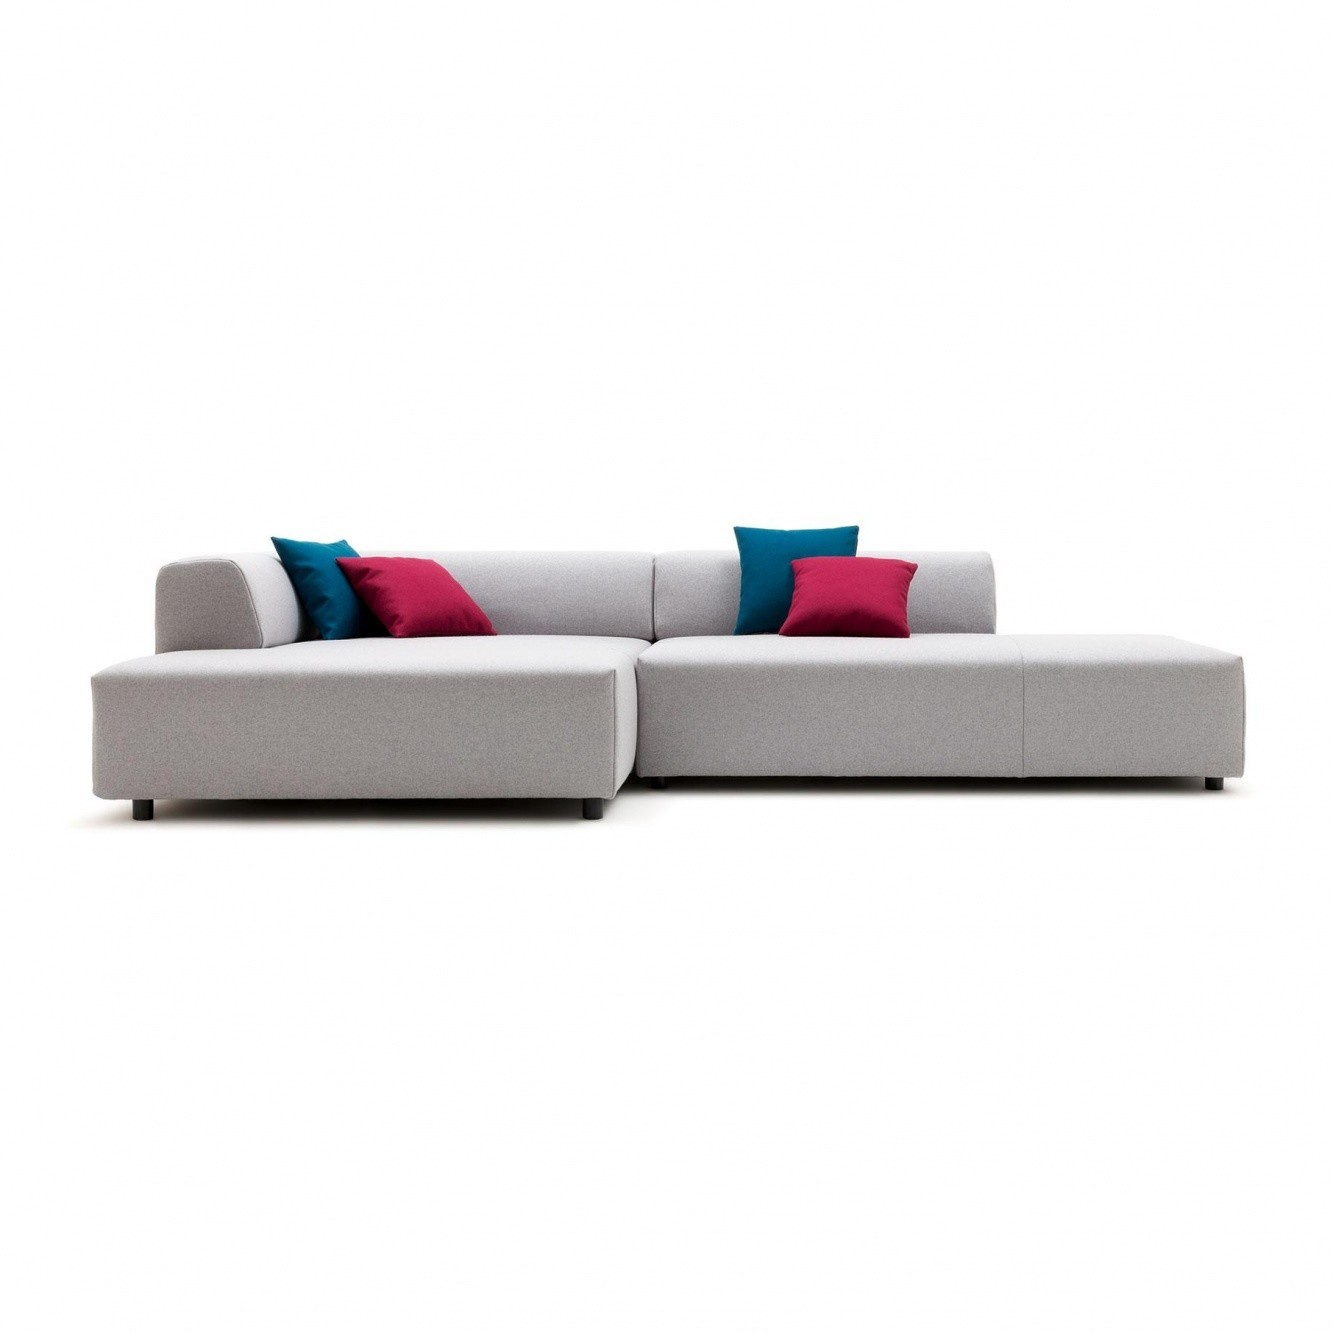 Bettsofa Rolf Benz Freistil 184 Lounge Sofa